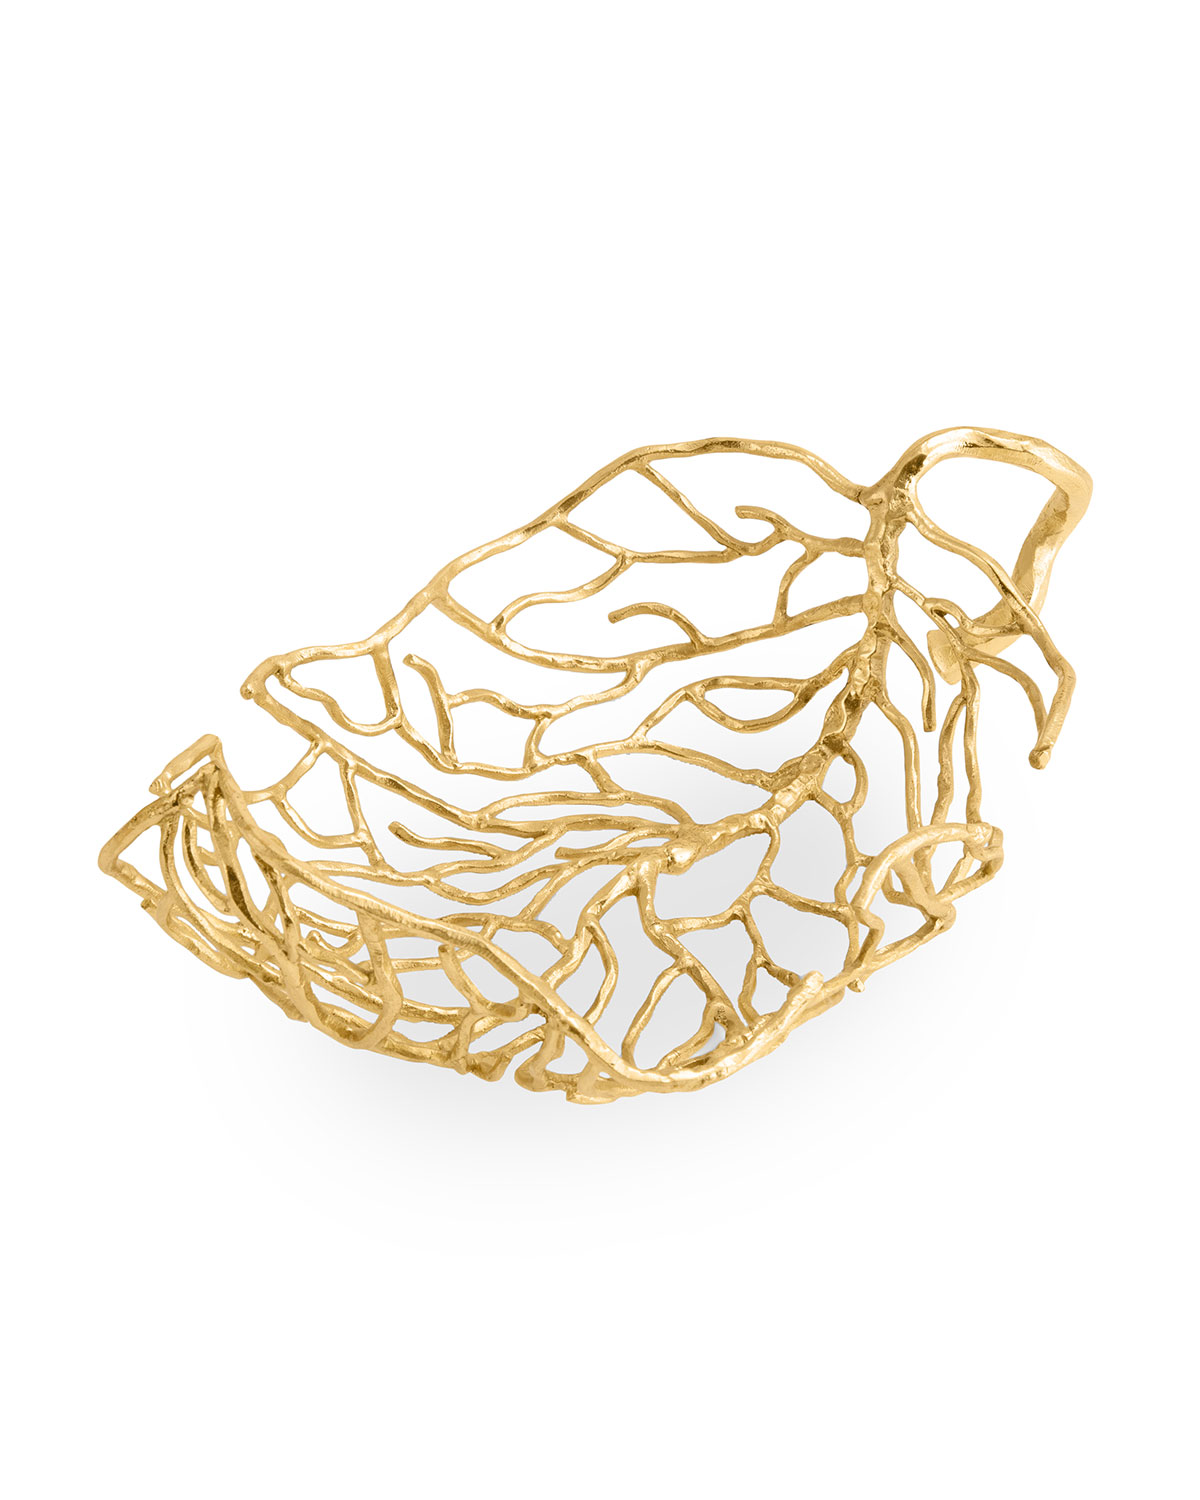 Michael Aram Autumn Leaf Small Bowl